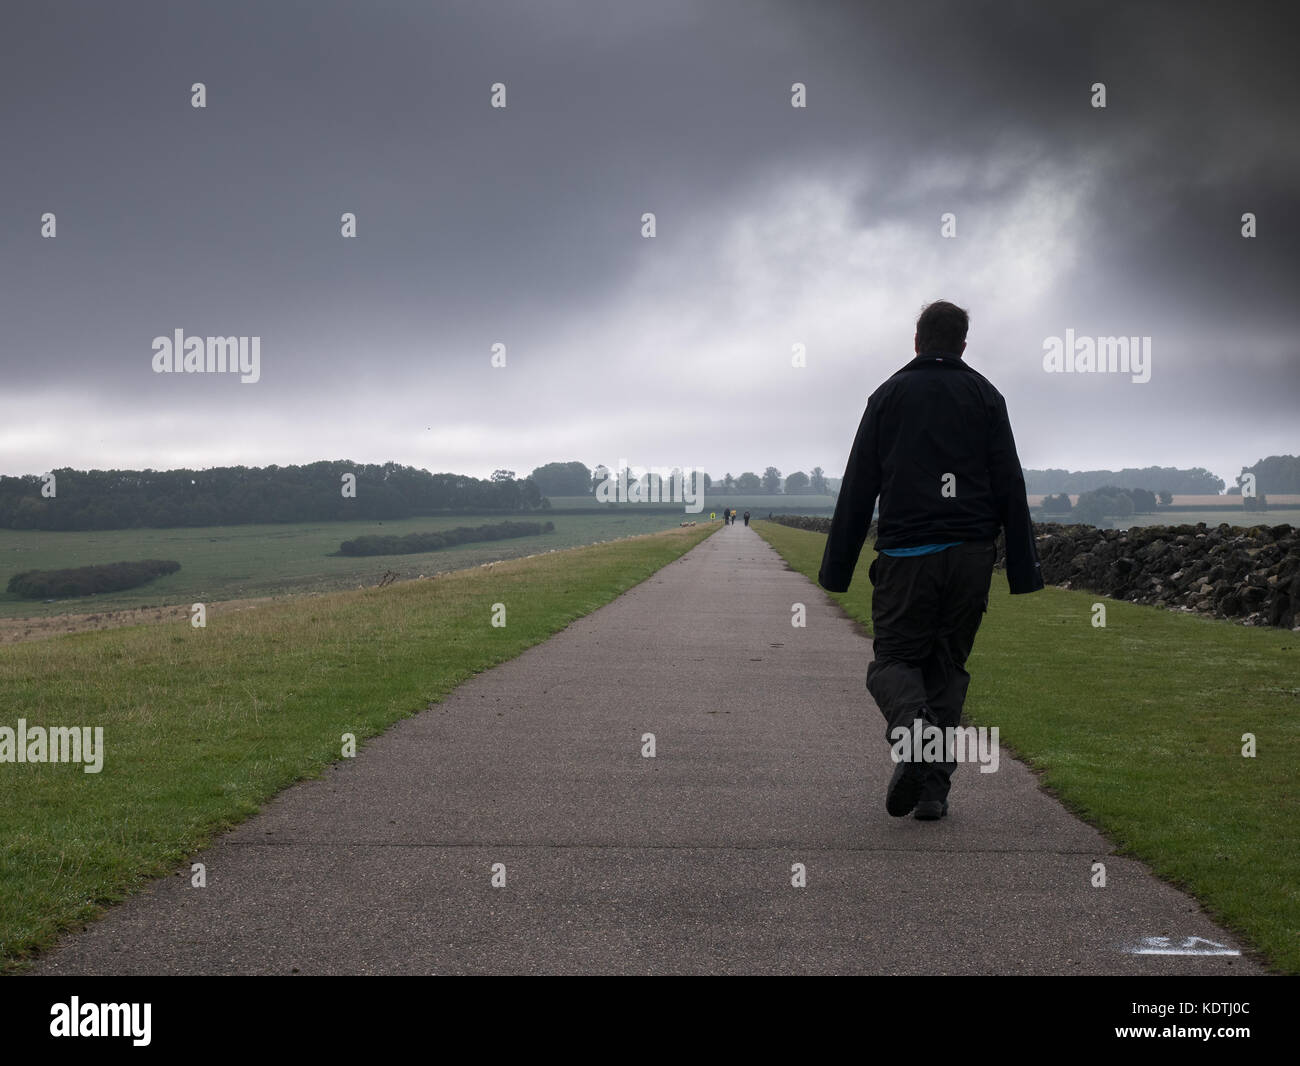 Strolling along the path over the dam at Rutland Water, England, on a dark, cloudy overcast day. - Stock Image